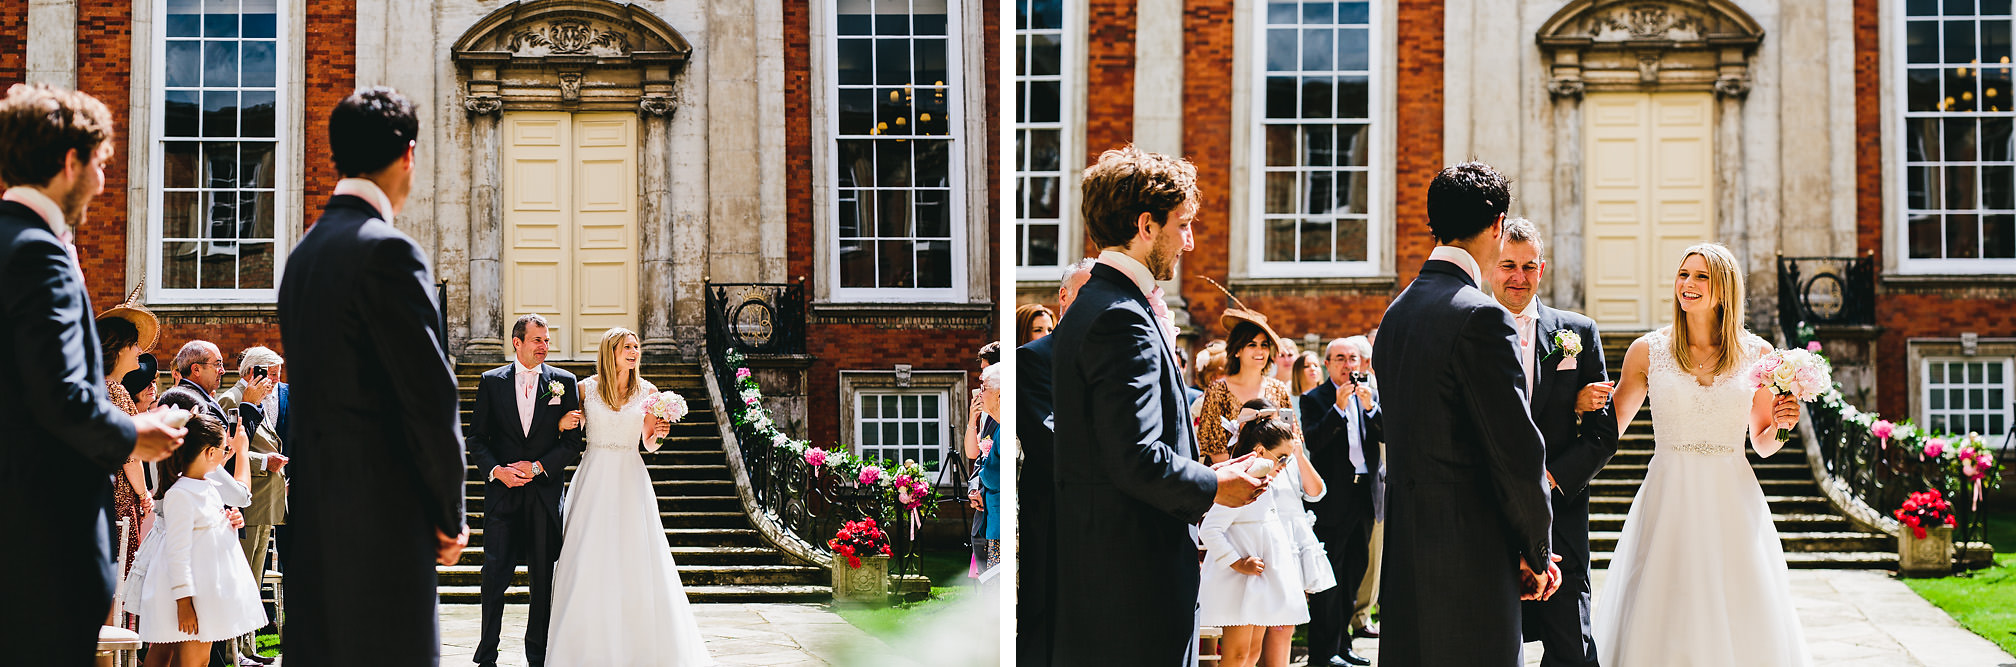 Bride walking down the isle - Kimbolton Castle Wedding